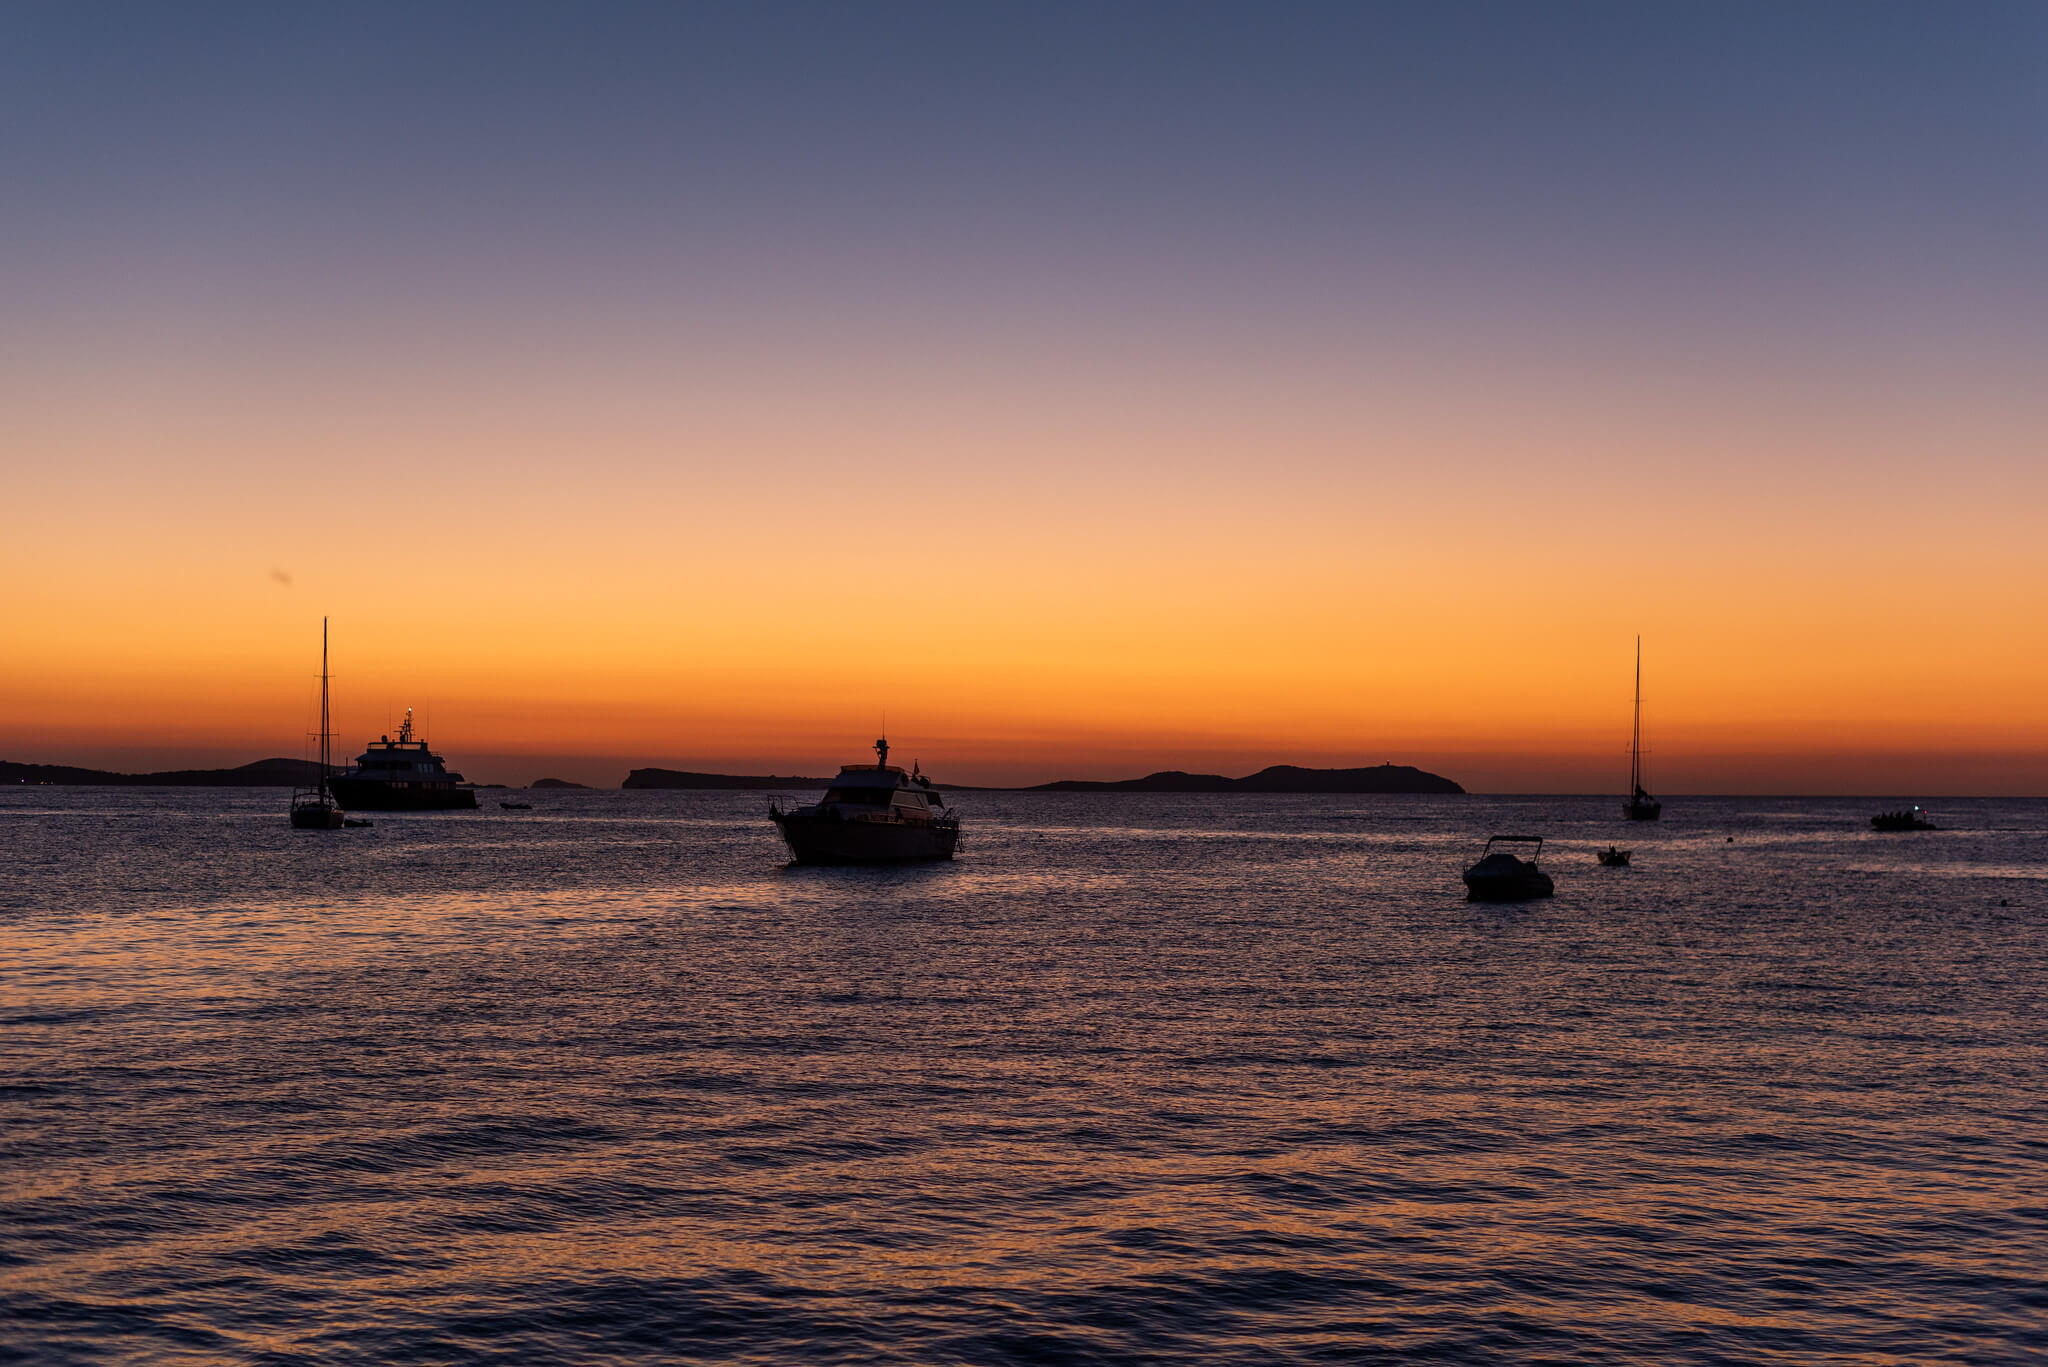 https://www.white-ibiza.com/wp-content/uploads/2020/03/ibiza-sunsets-sunset-strip-2020-03.jpg